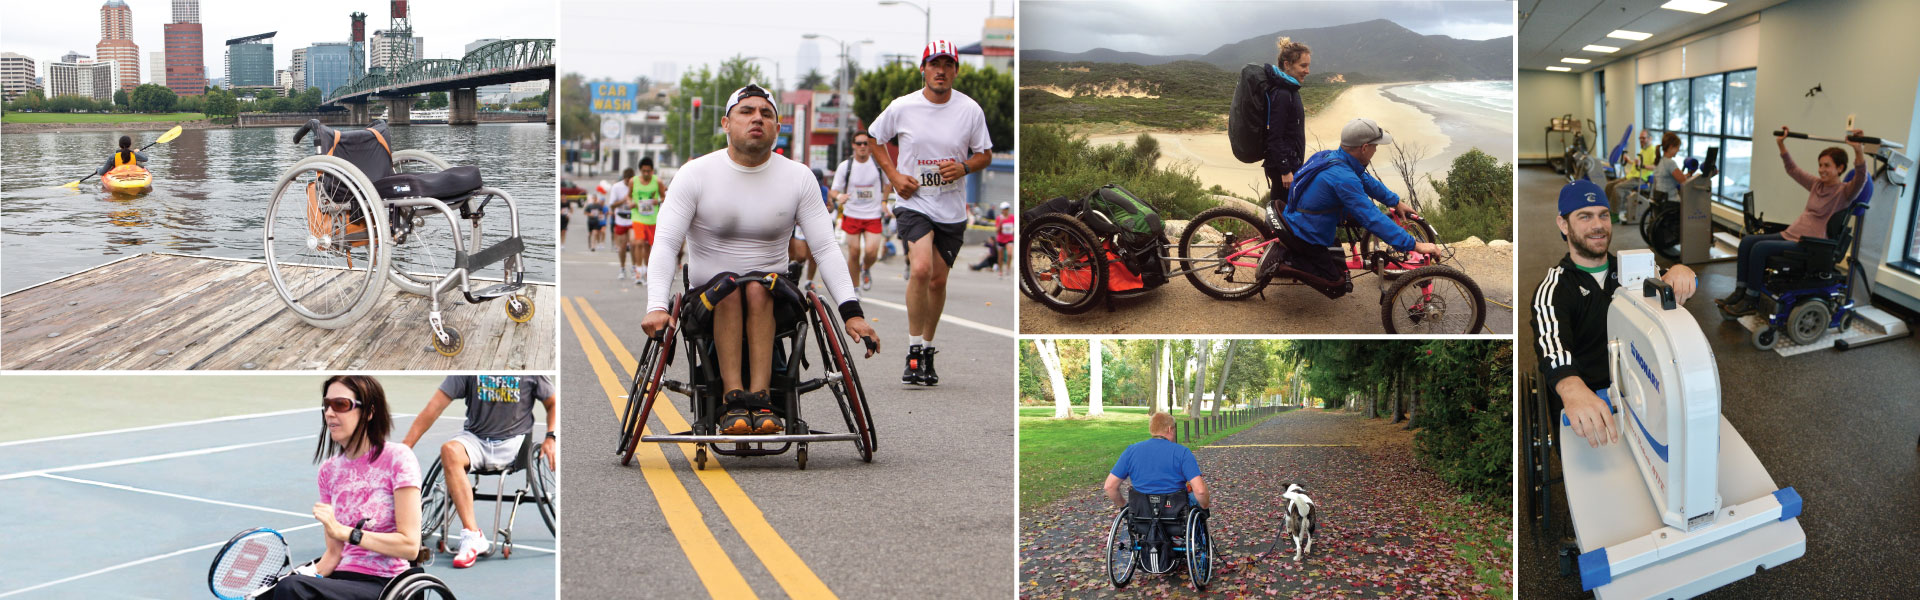 Spinal Cord Injury physical activities